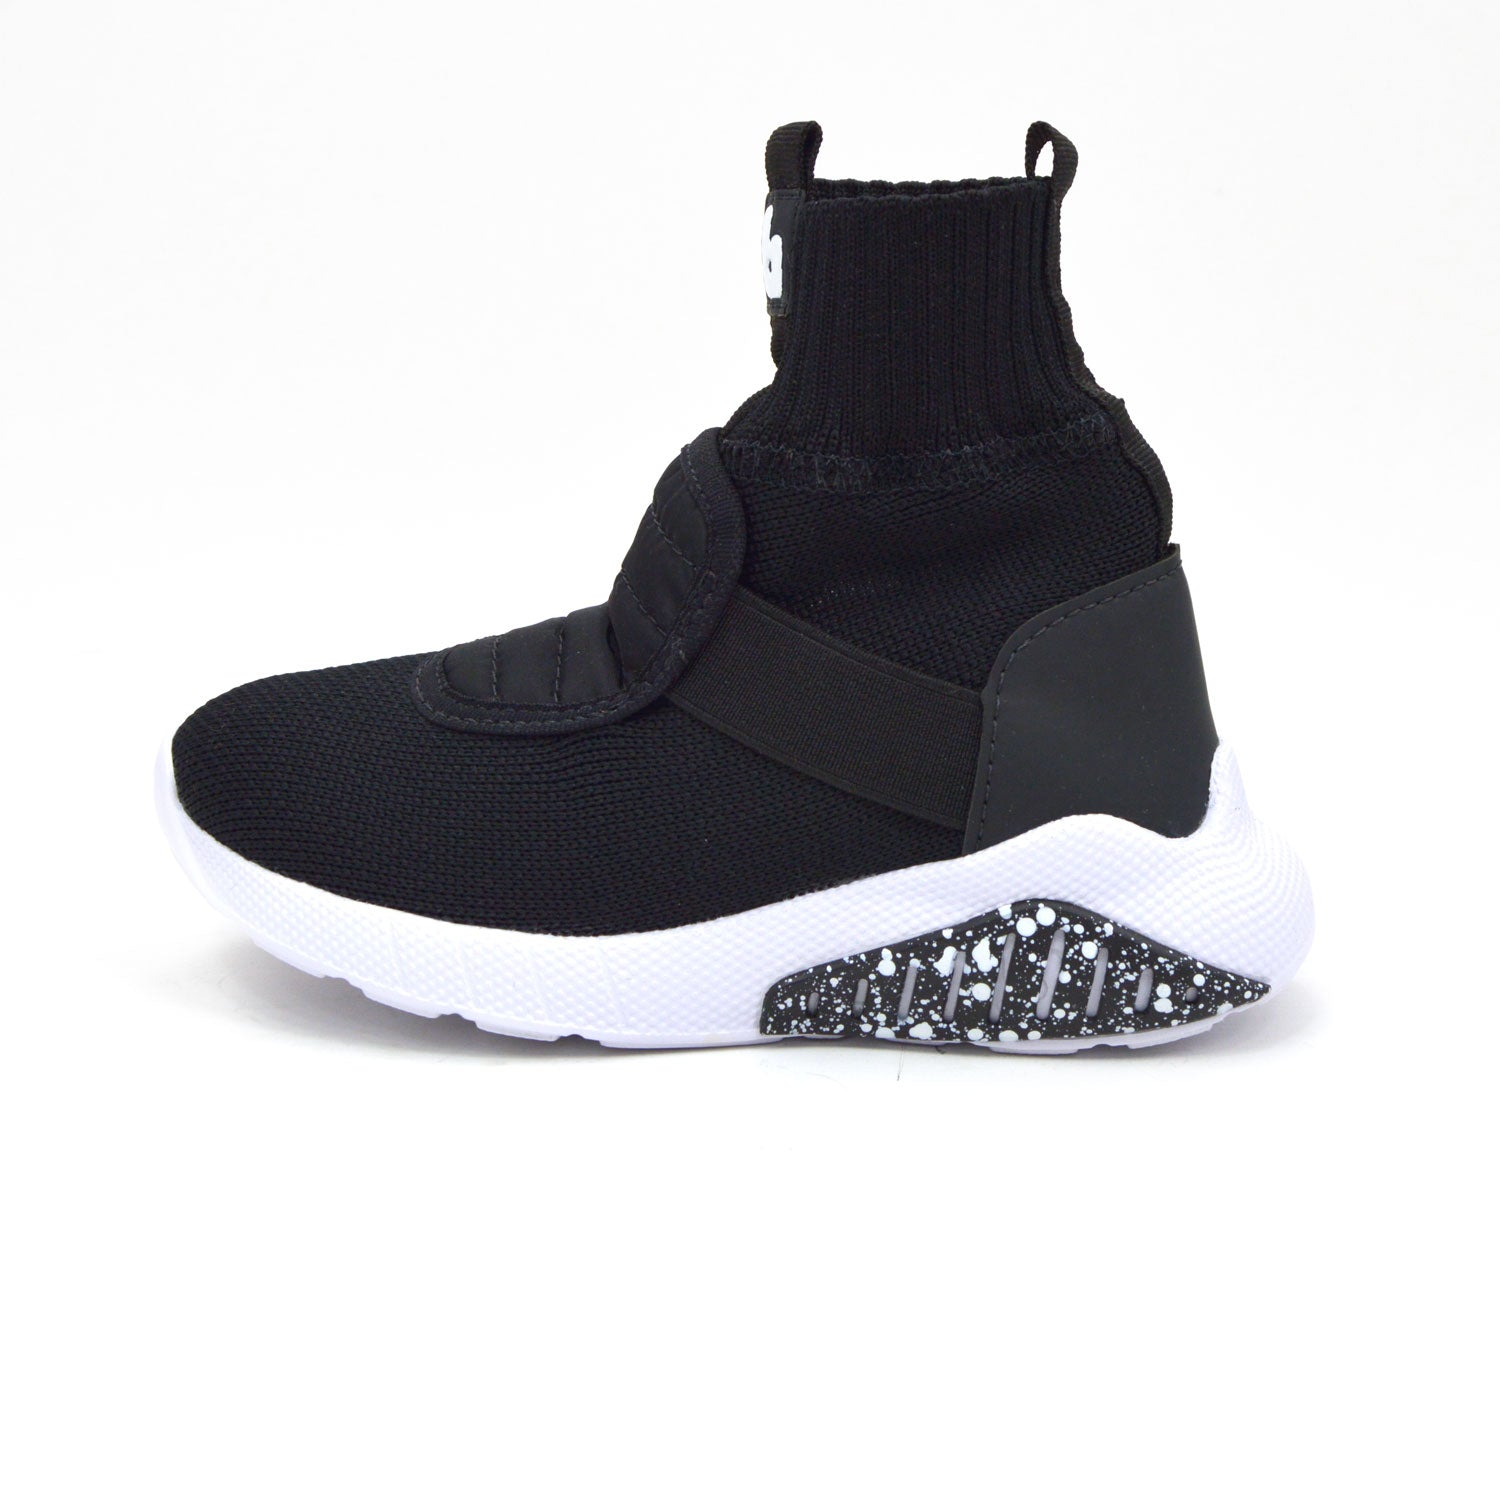 Evolution High Top sneaker